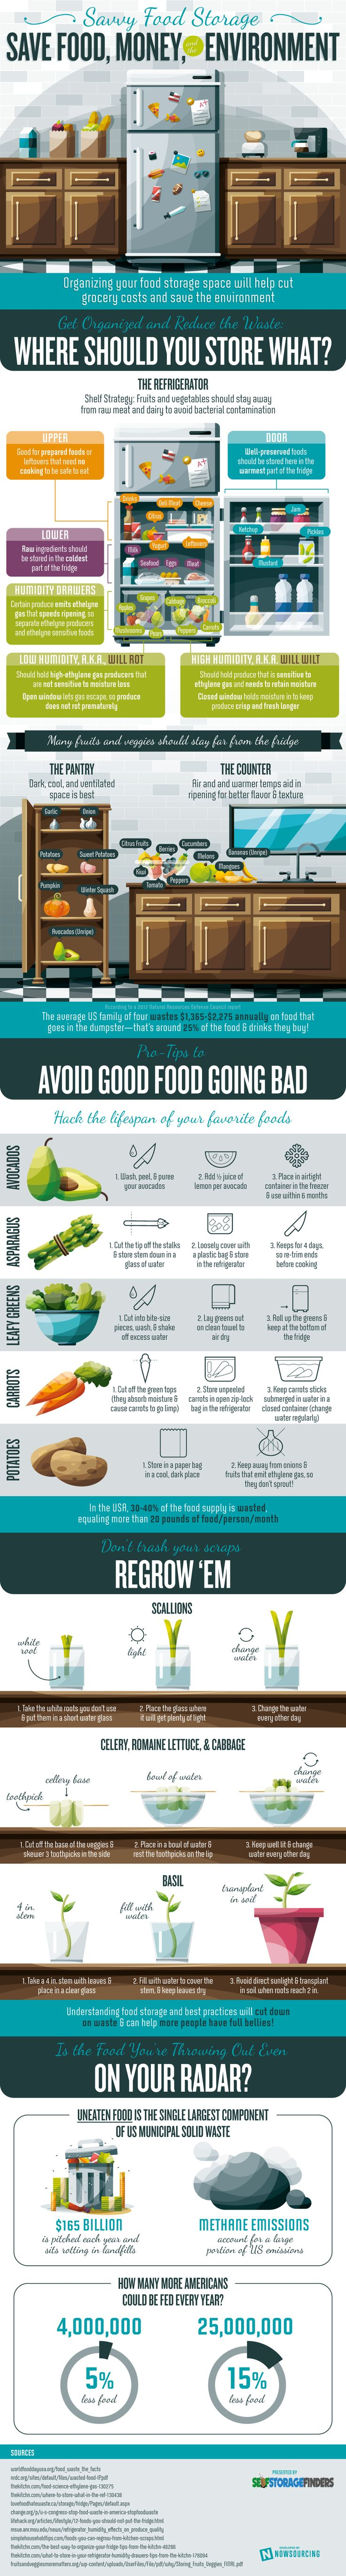 Proper Food Storage Requires Simple 640 Best Food Infographics Images On Pinterest Inspiration Design